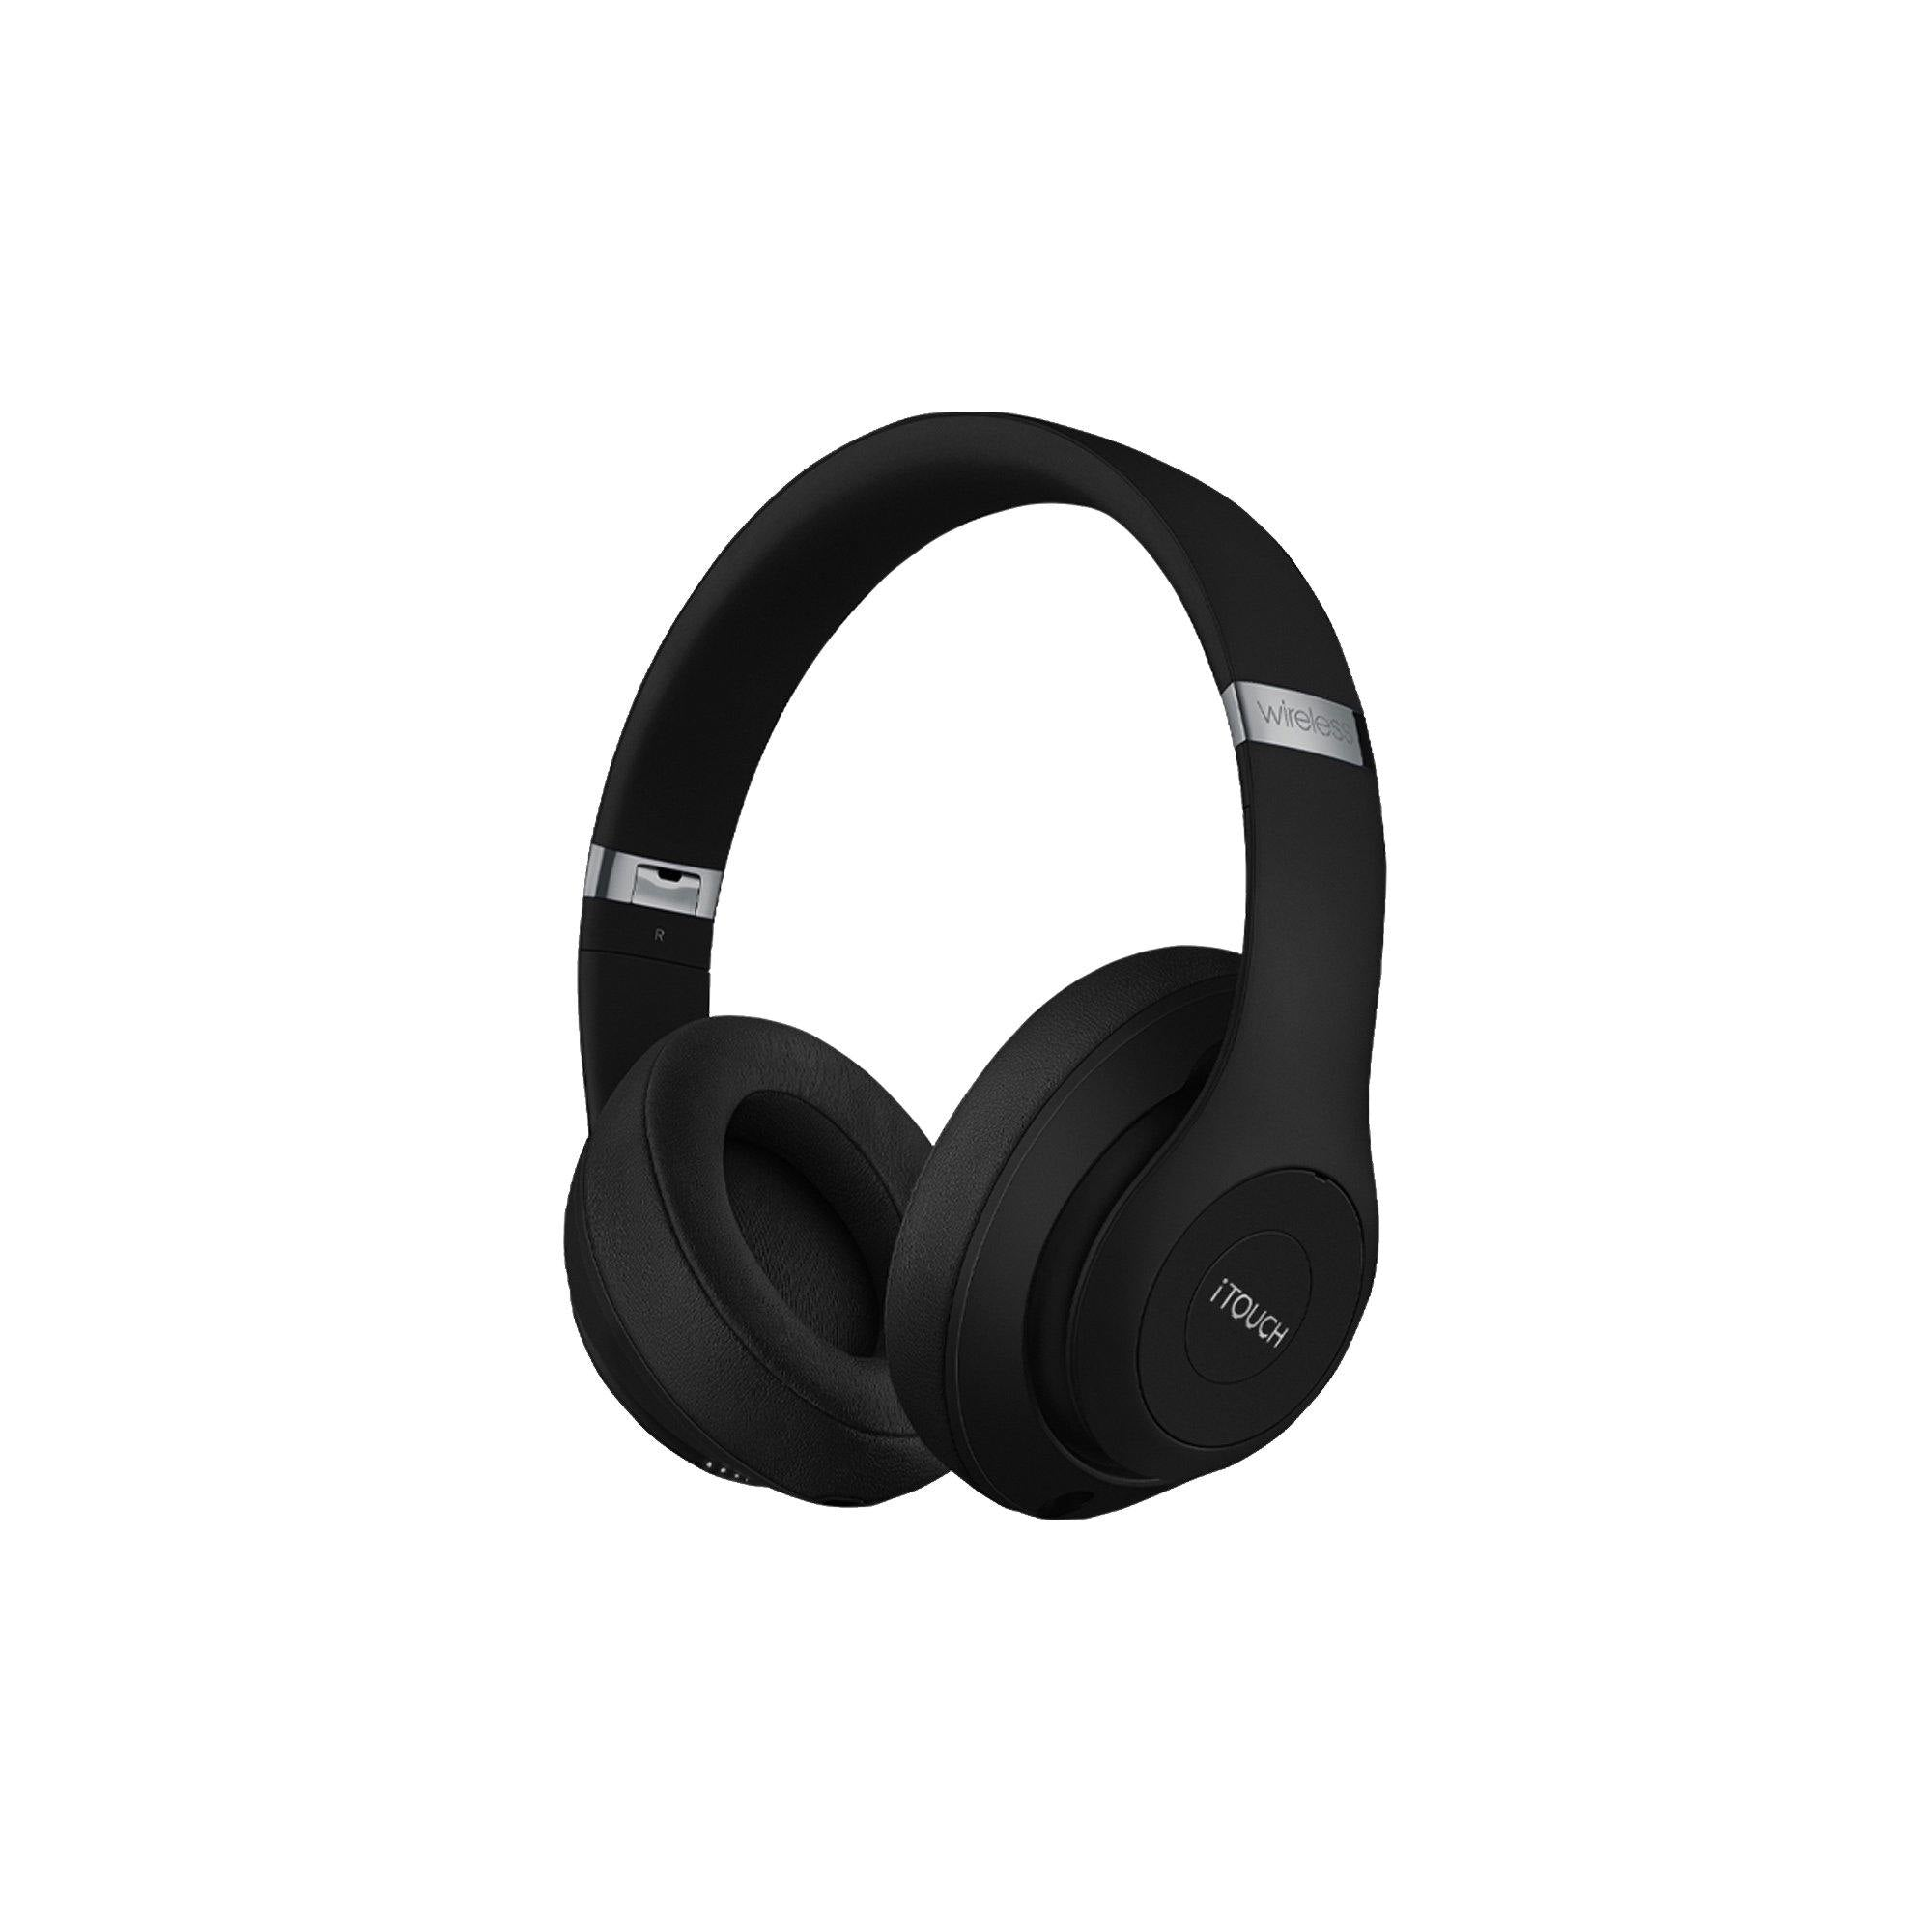 Wireless Over-Ear Headphones: Black